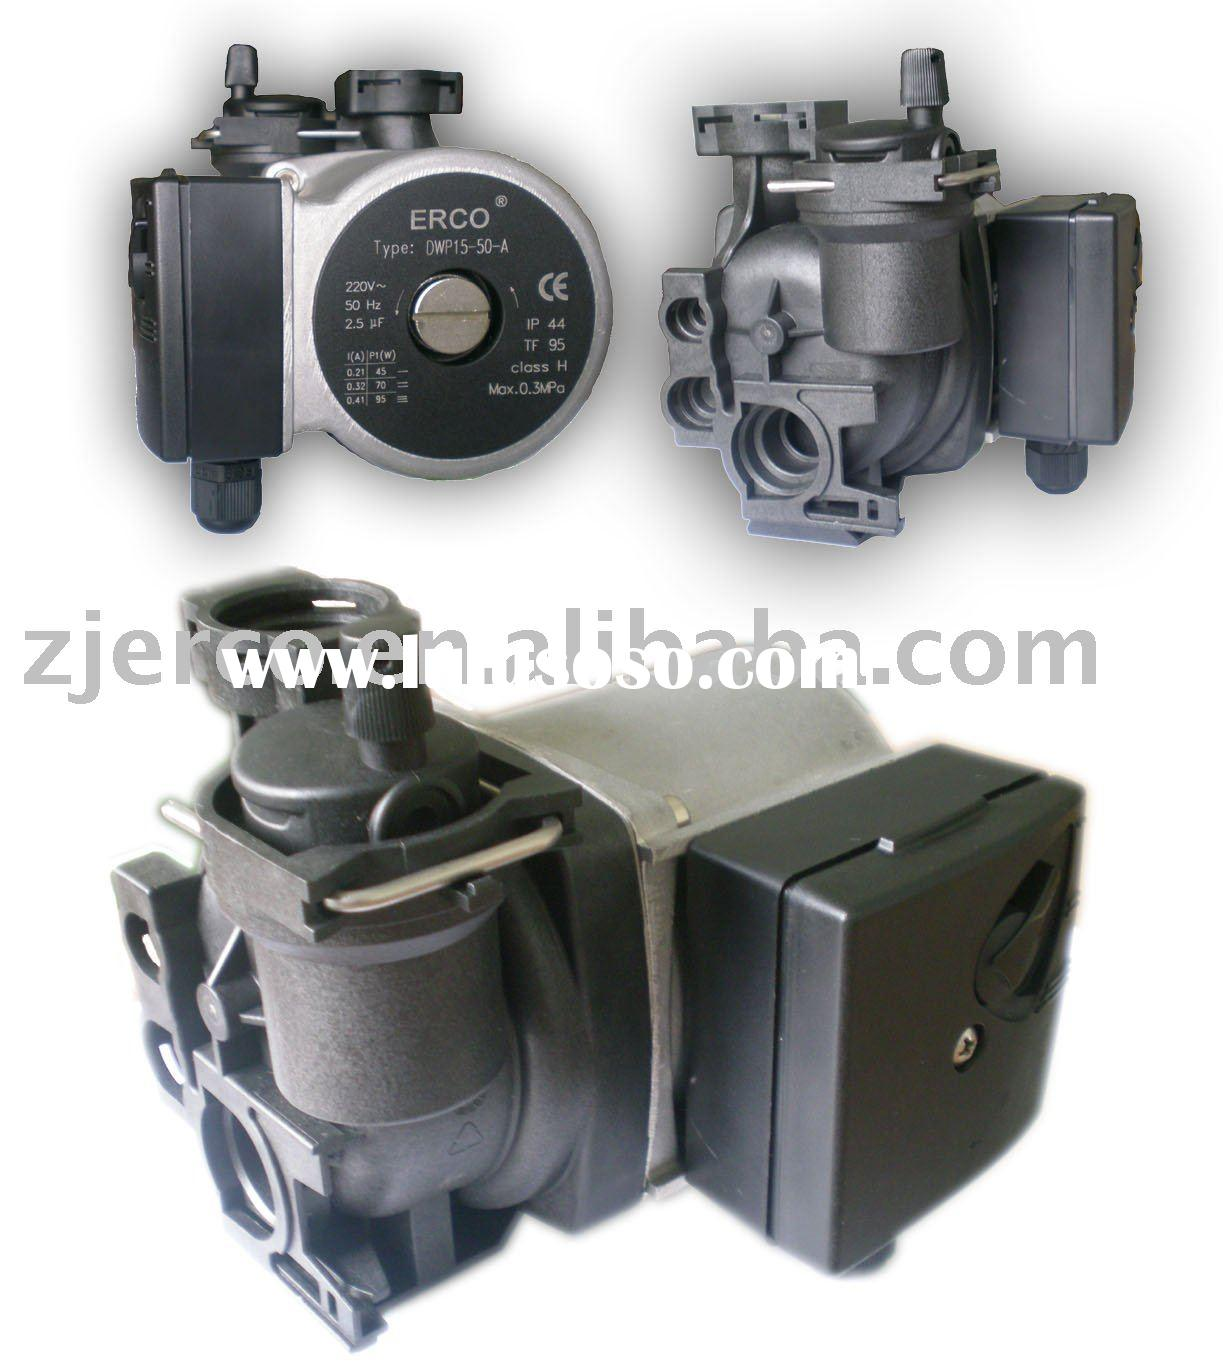 Gas heater parts (DWP 15-50-A)